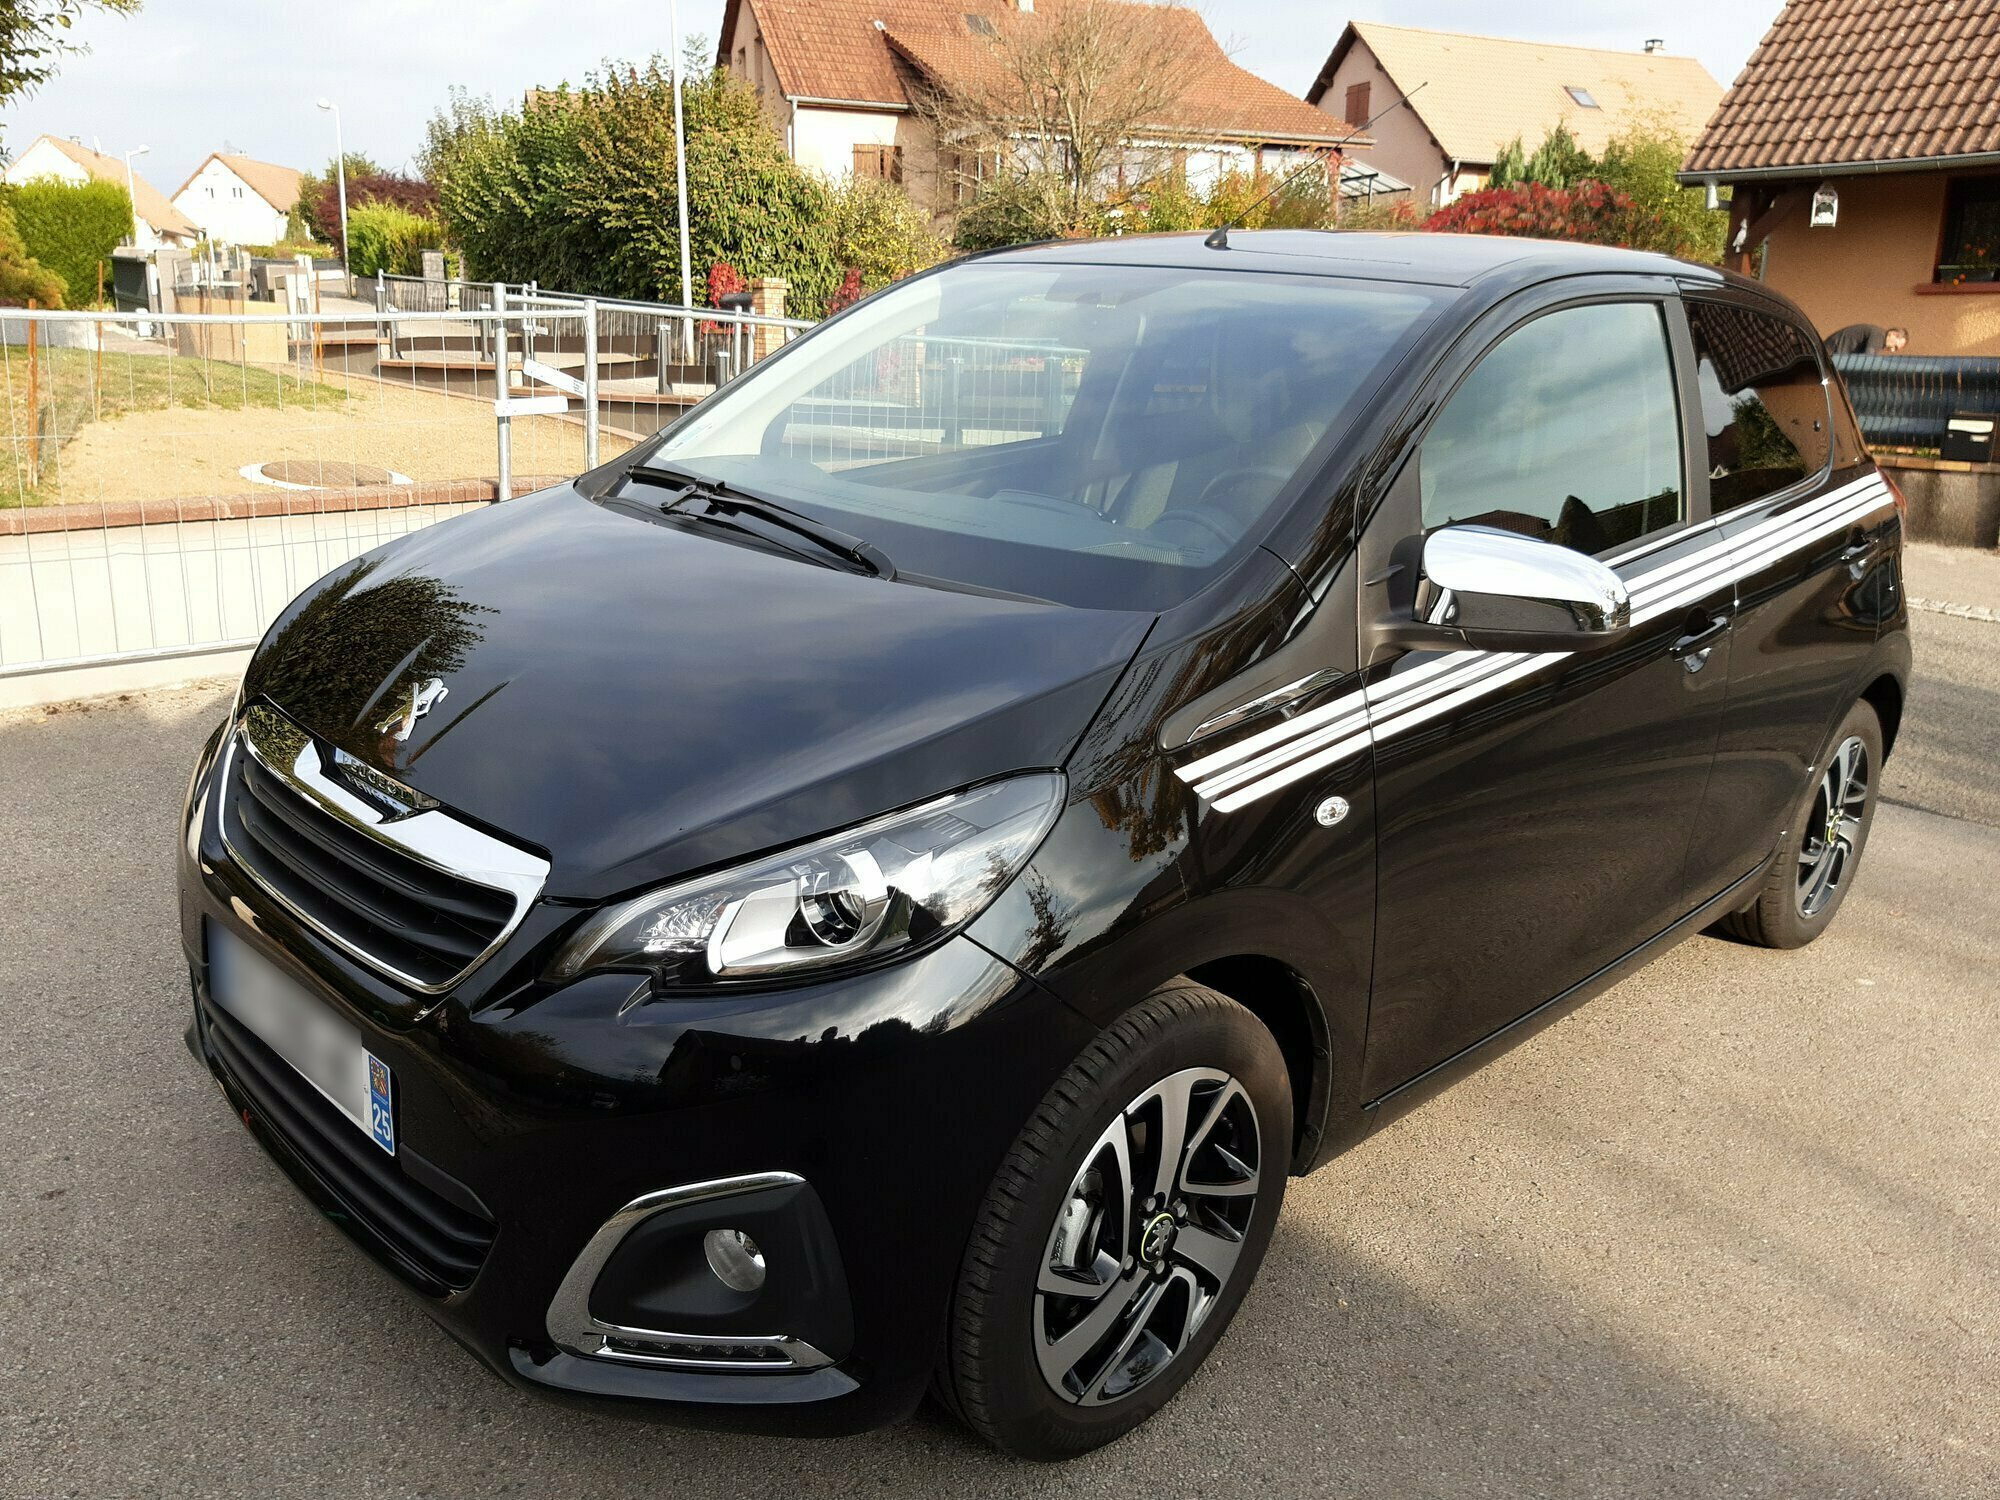 PEUGEOT 108 1.0 VTI 70 COLLECTION